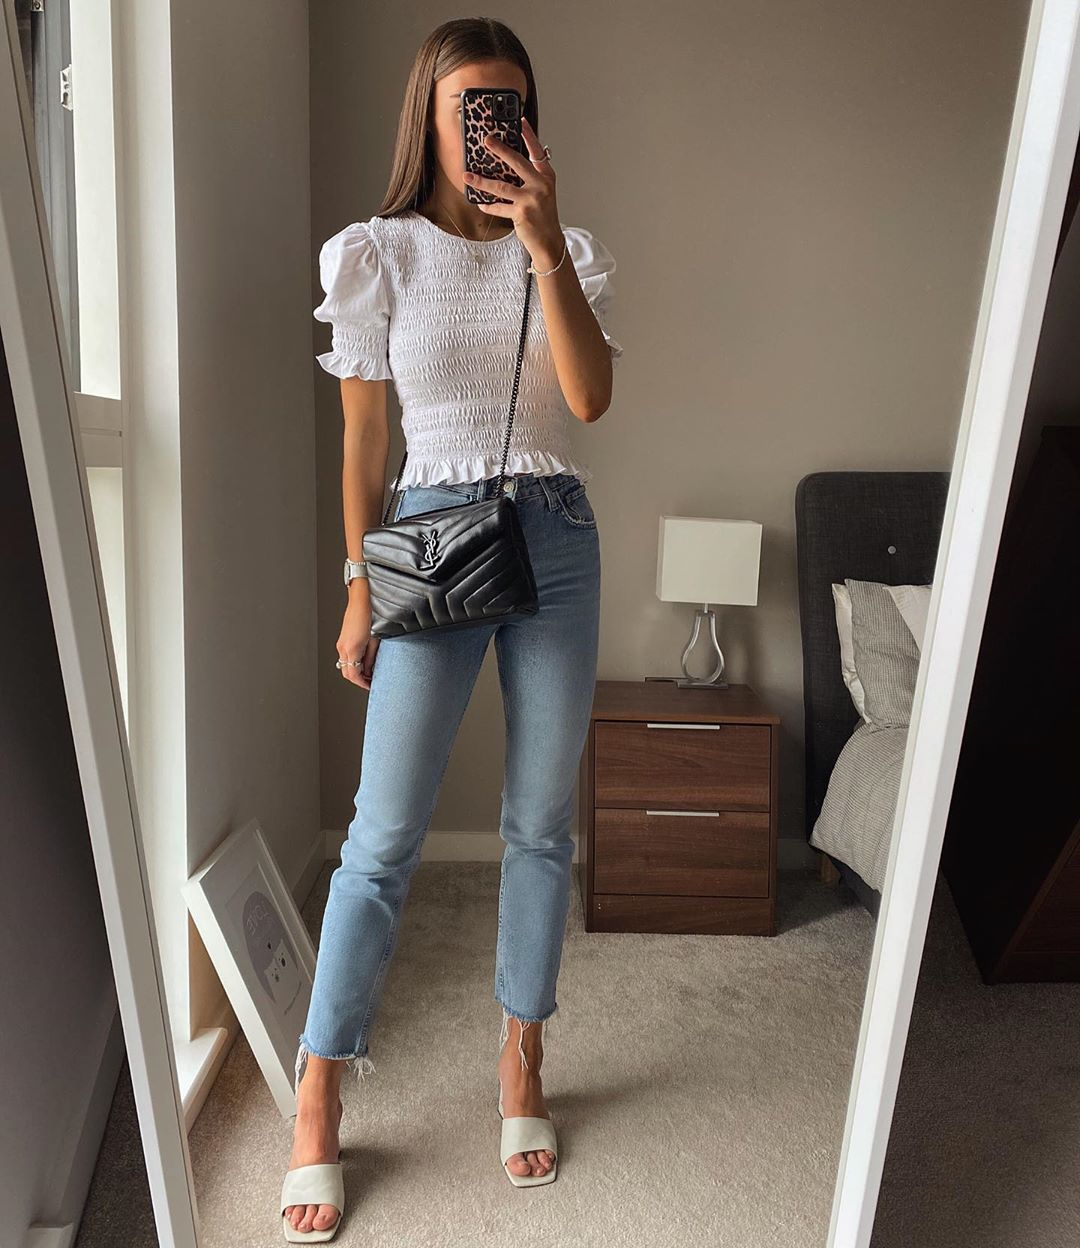 We Love This Chic Take On Jeans and a T-Shirt for Summer